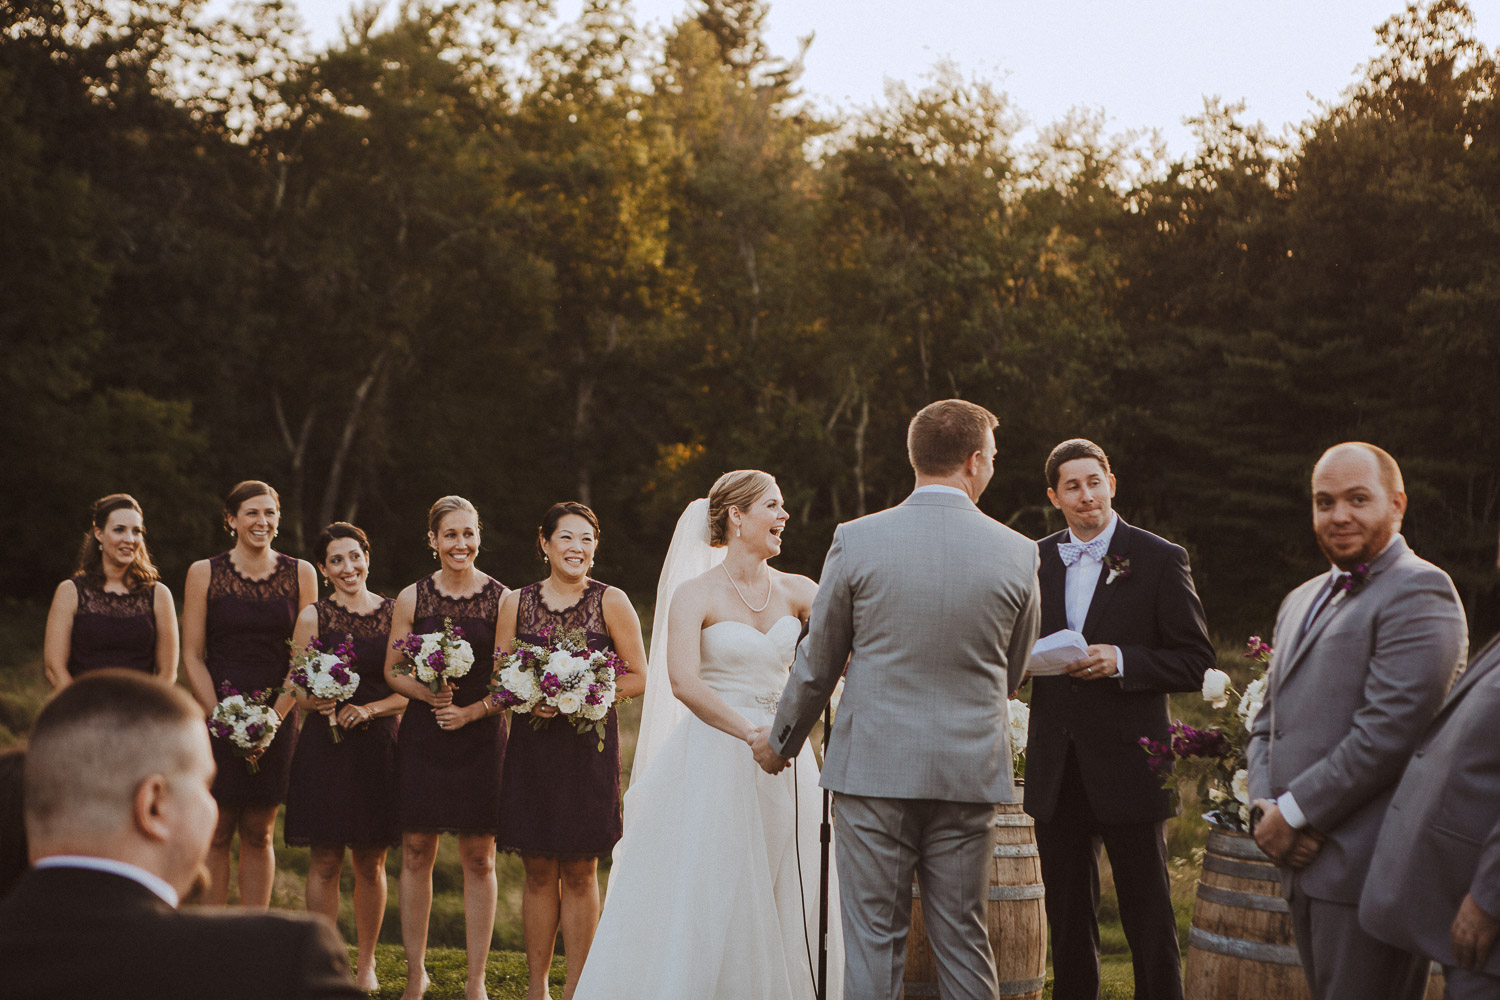 New Hamoshire Wedding at LaBelle Winery